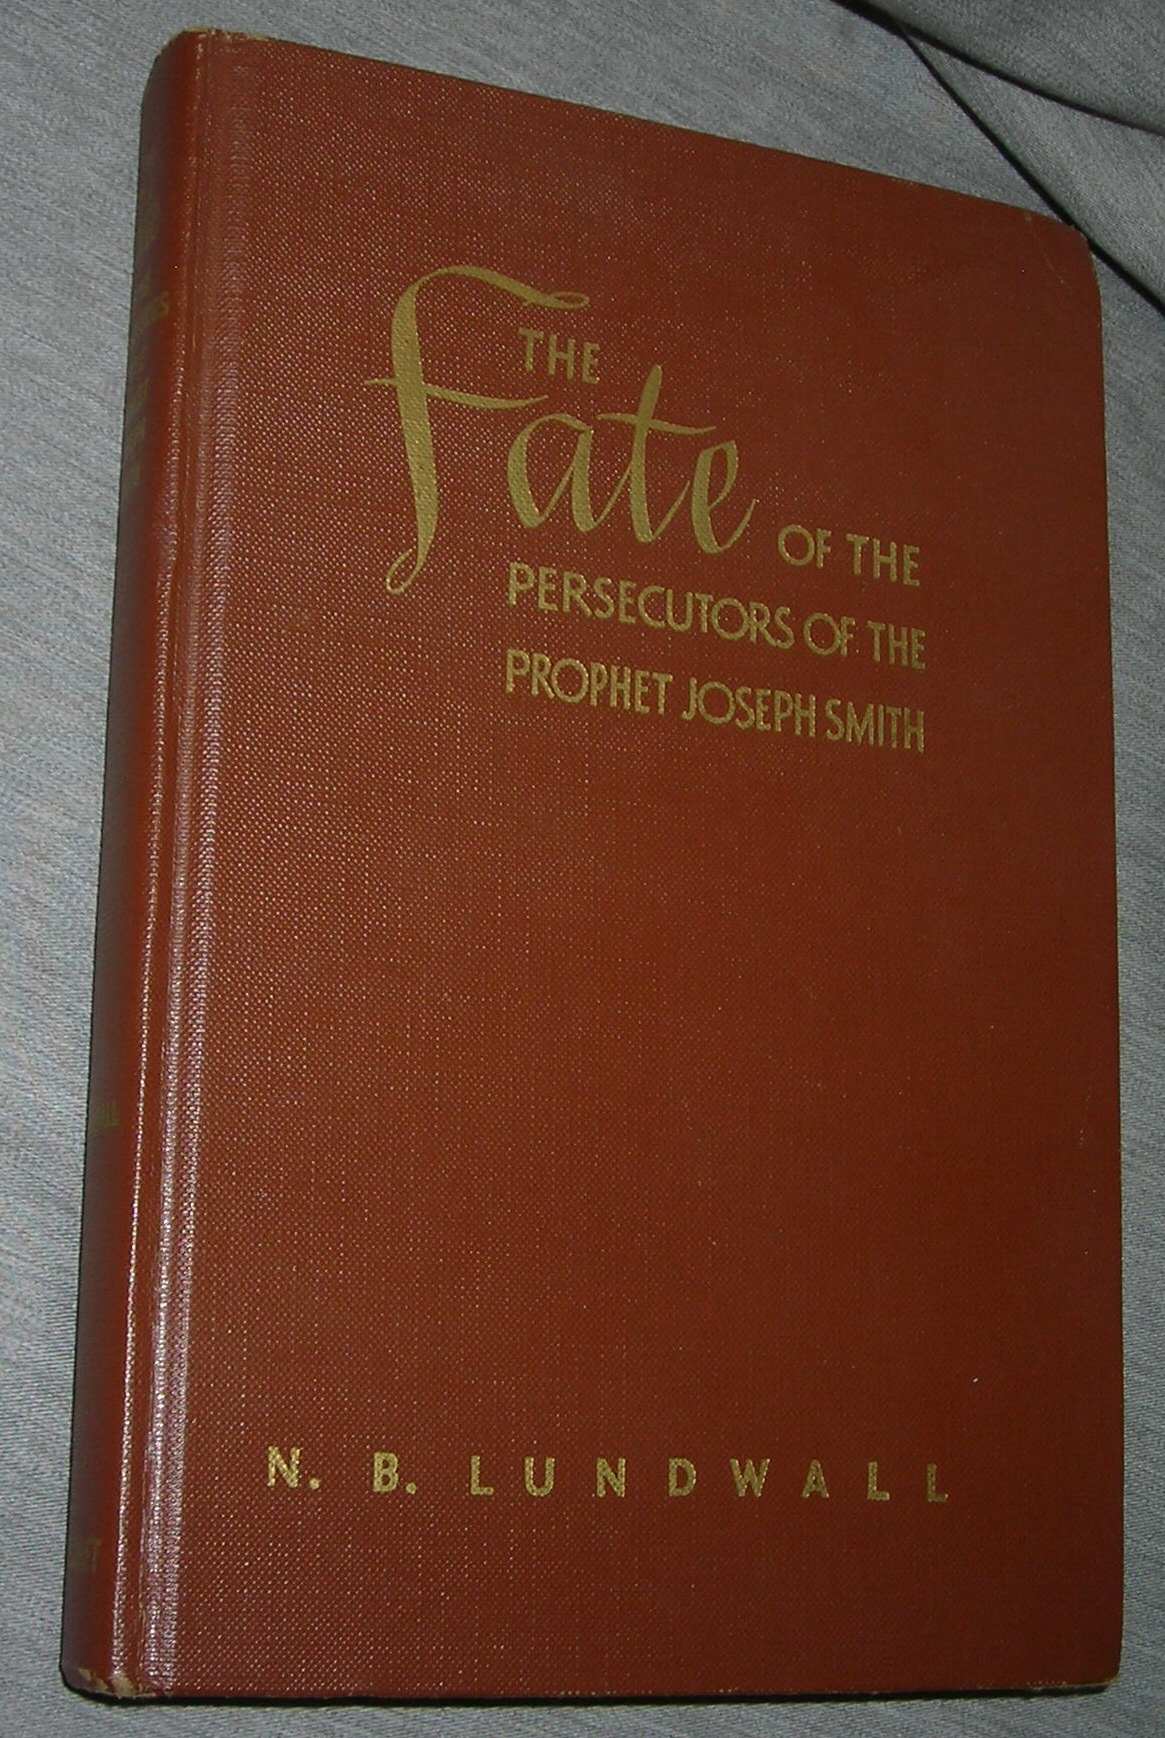 THE FATE OF THE PERSECUTORS OF THE PROPHET JOSEPH SMITH, Lundwall, N. B. (compiled by)